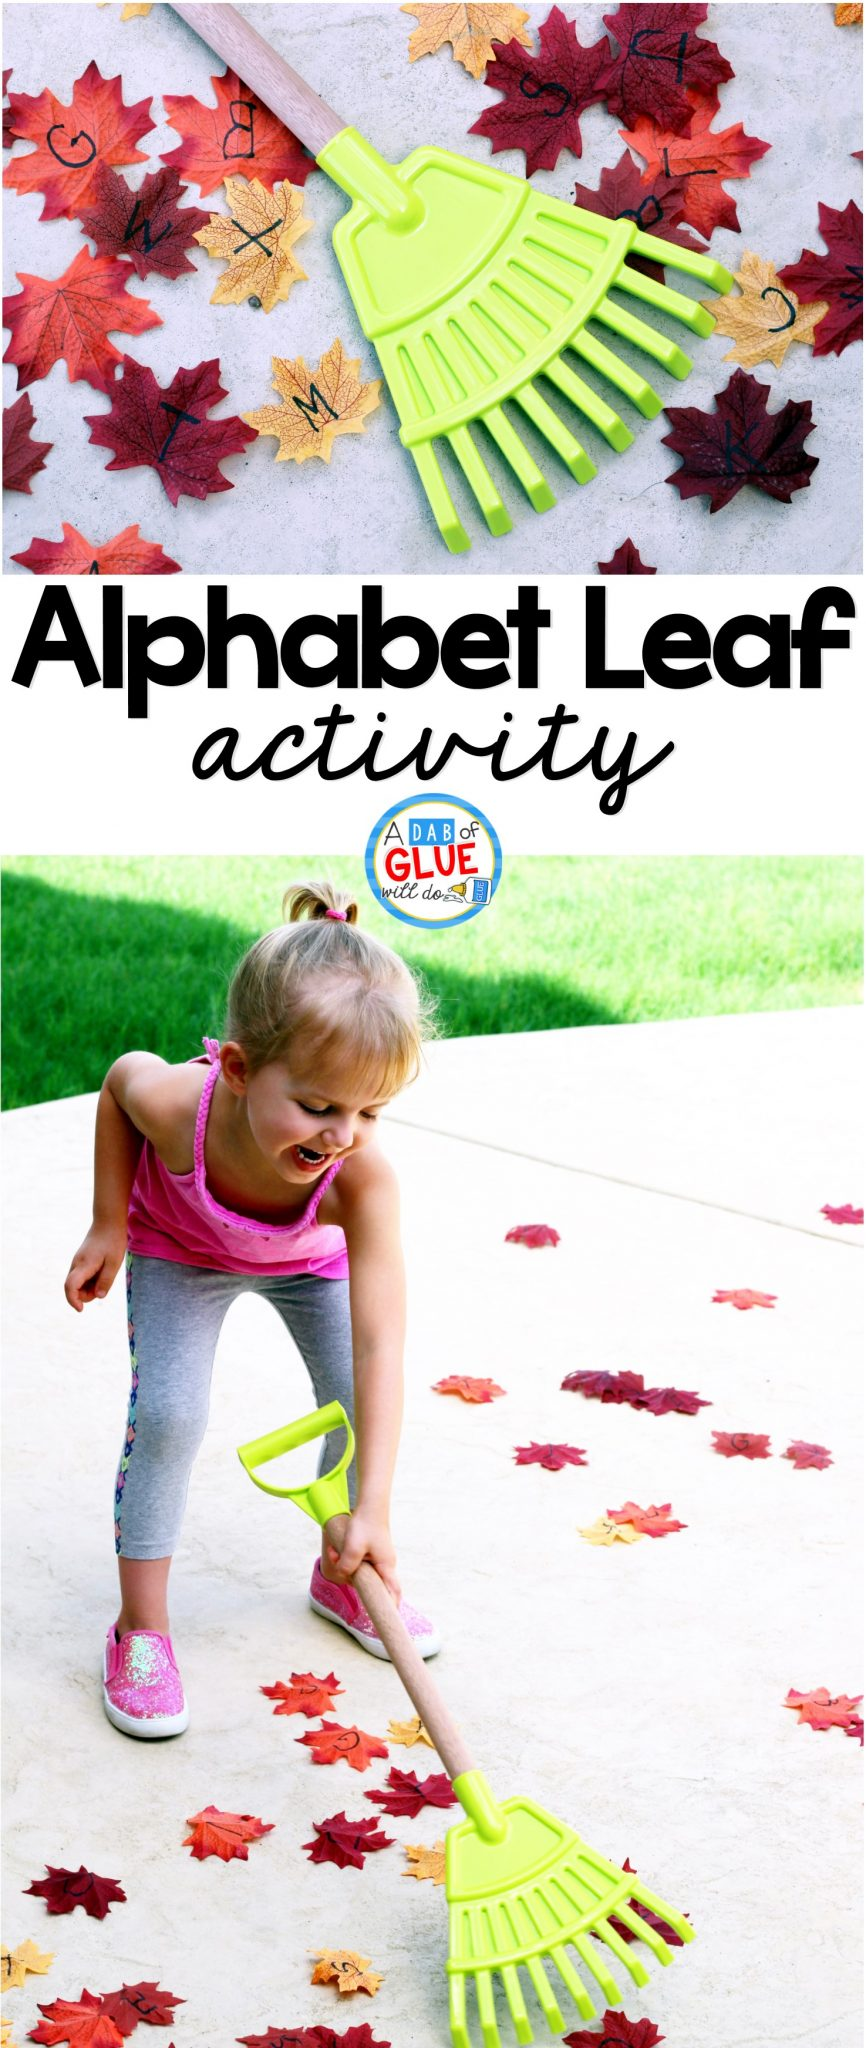 Alphabet Leaf Activity